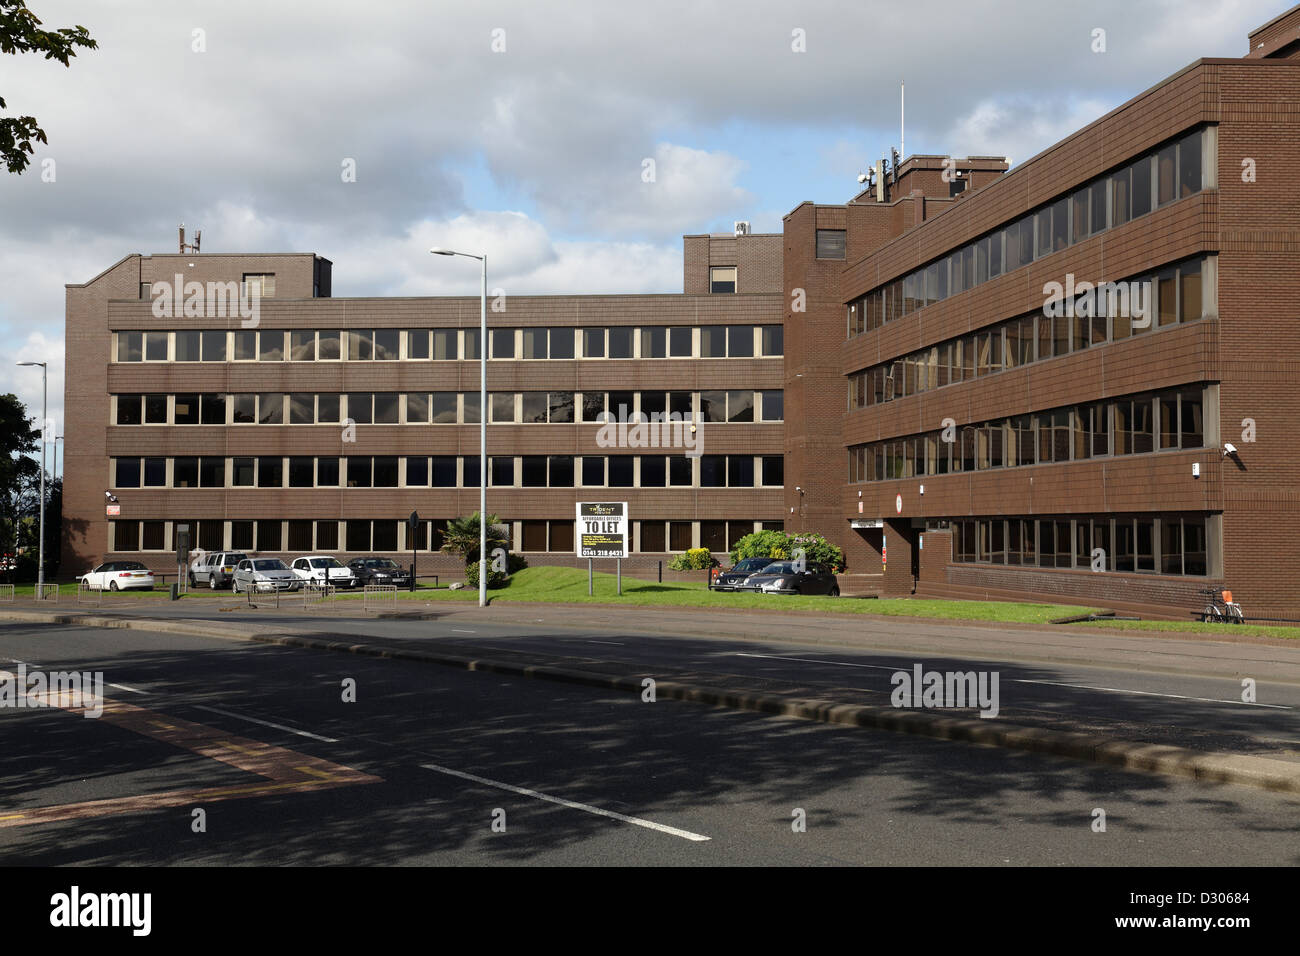 Trident House business premises in Renfrewshire, Scotland, UK - Stock Image